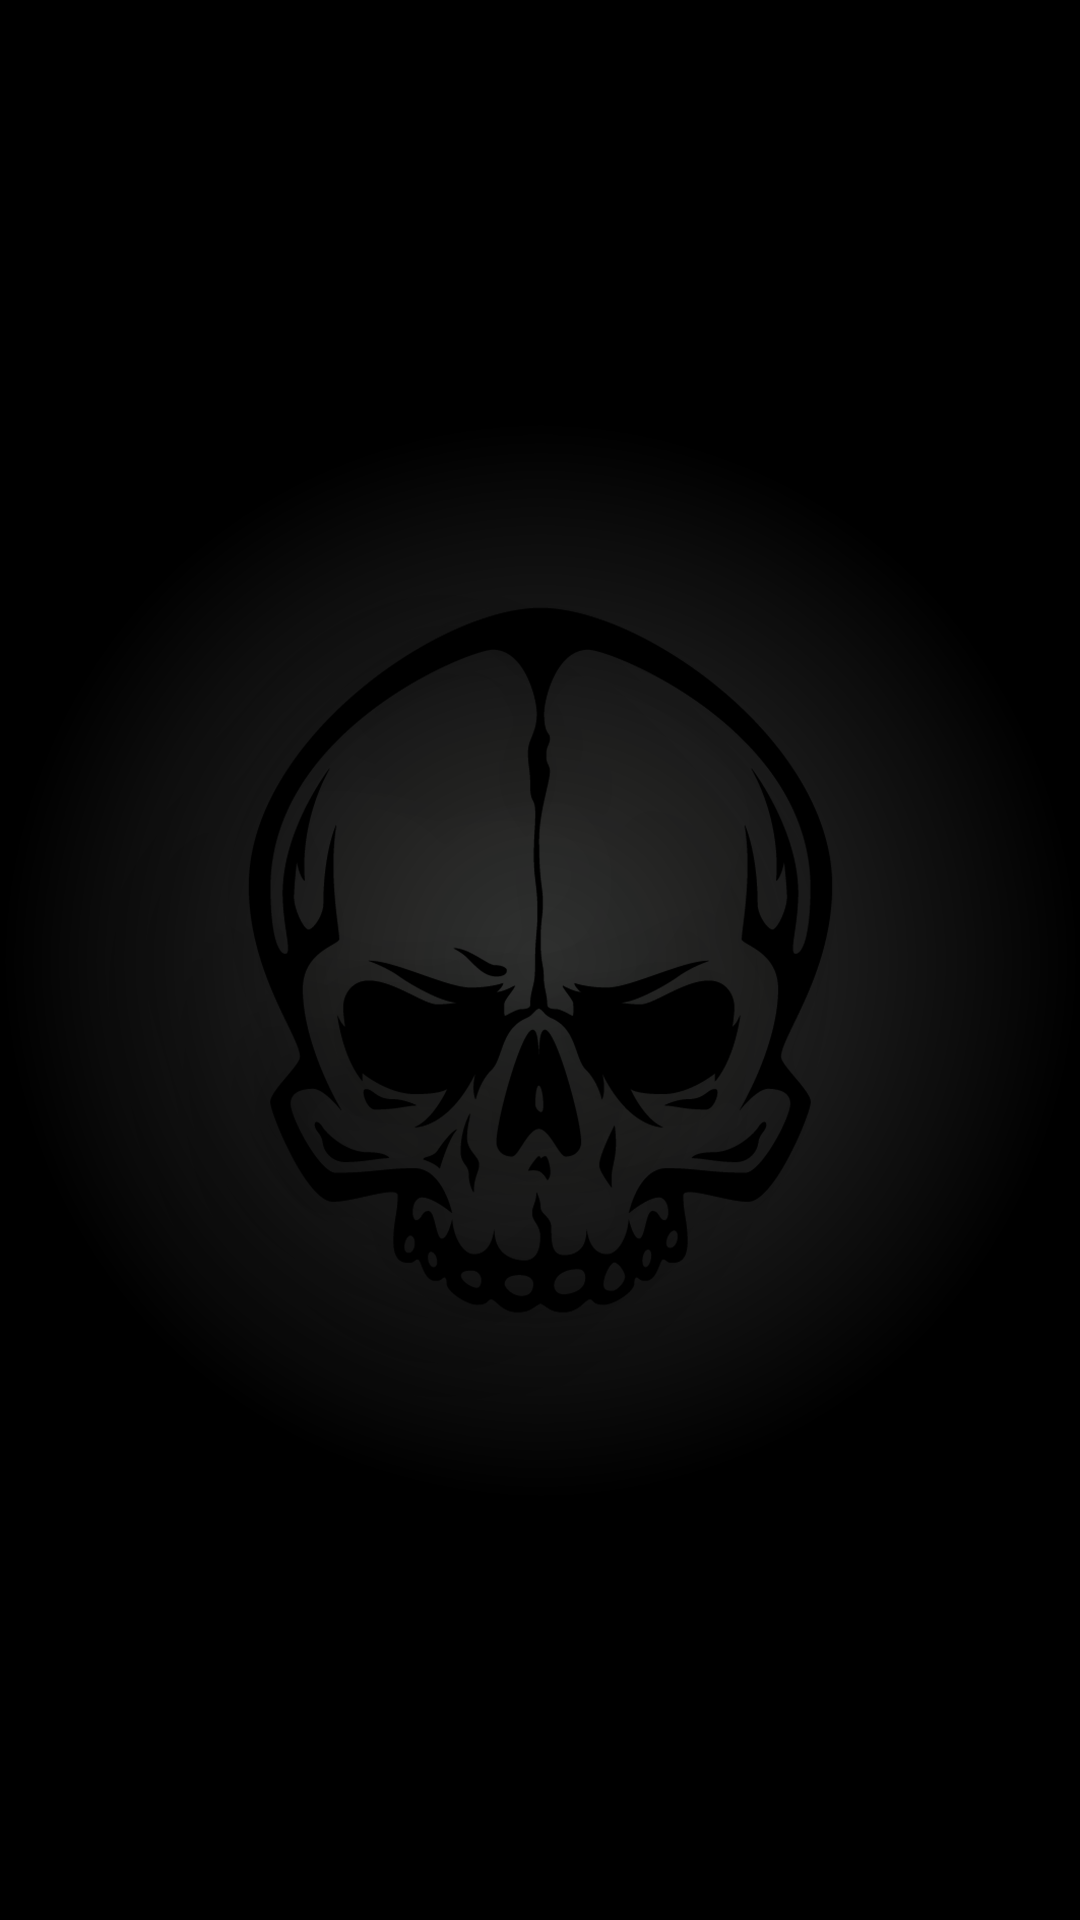 Hd Skull Wallpapers For Android Posted By Christopher Mercado